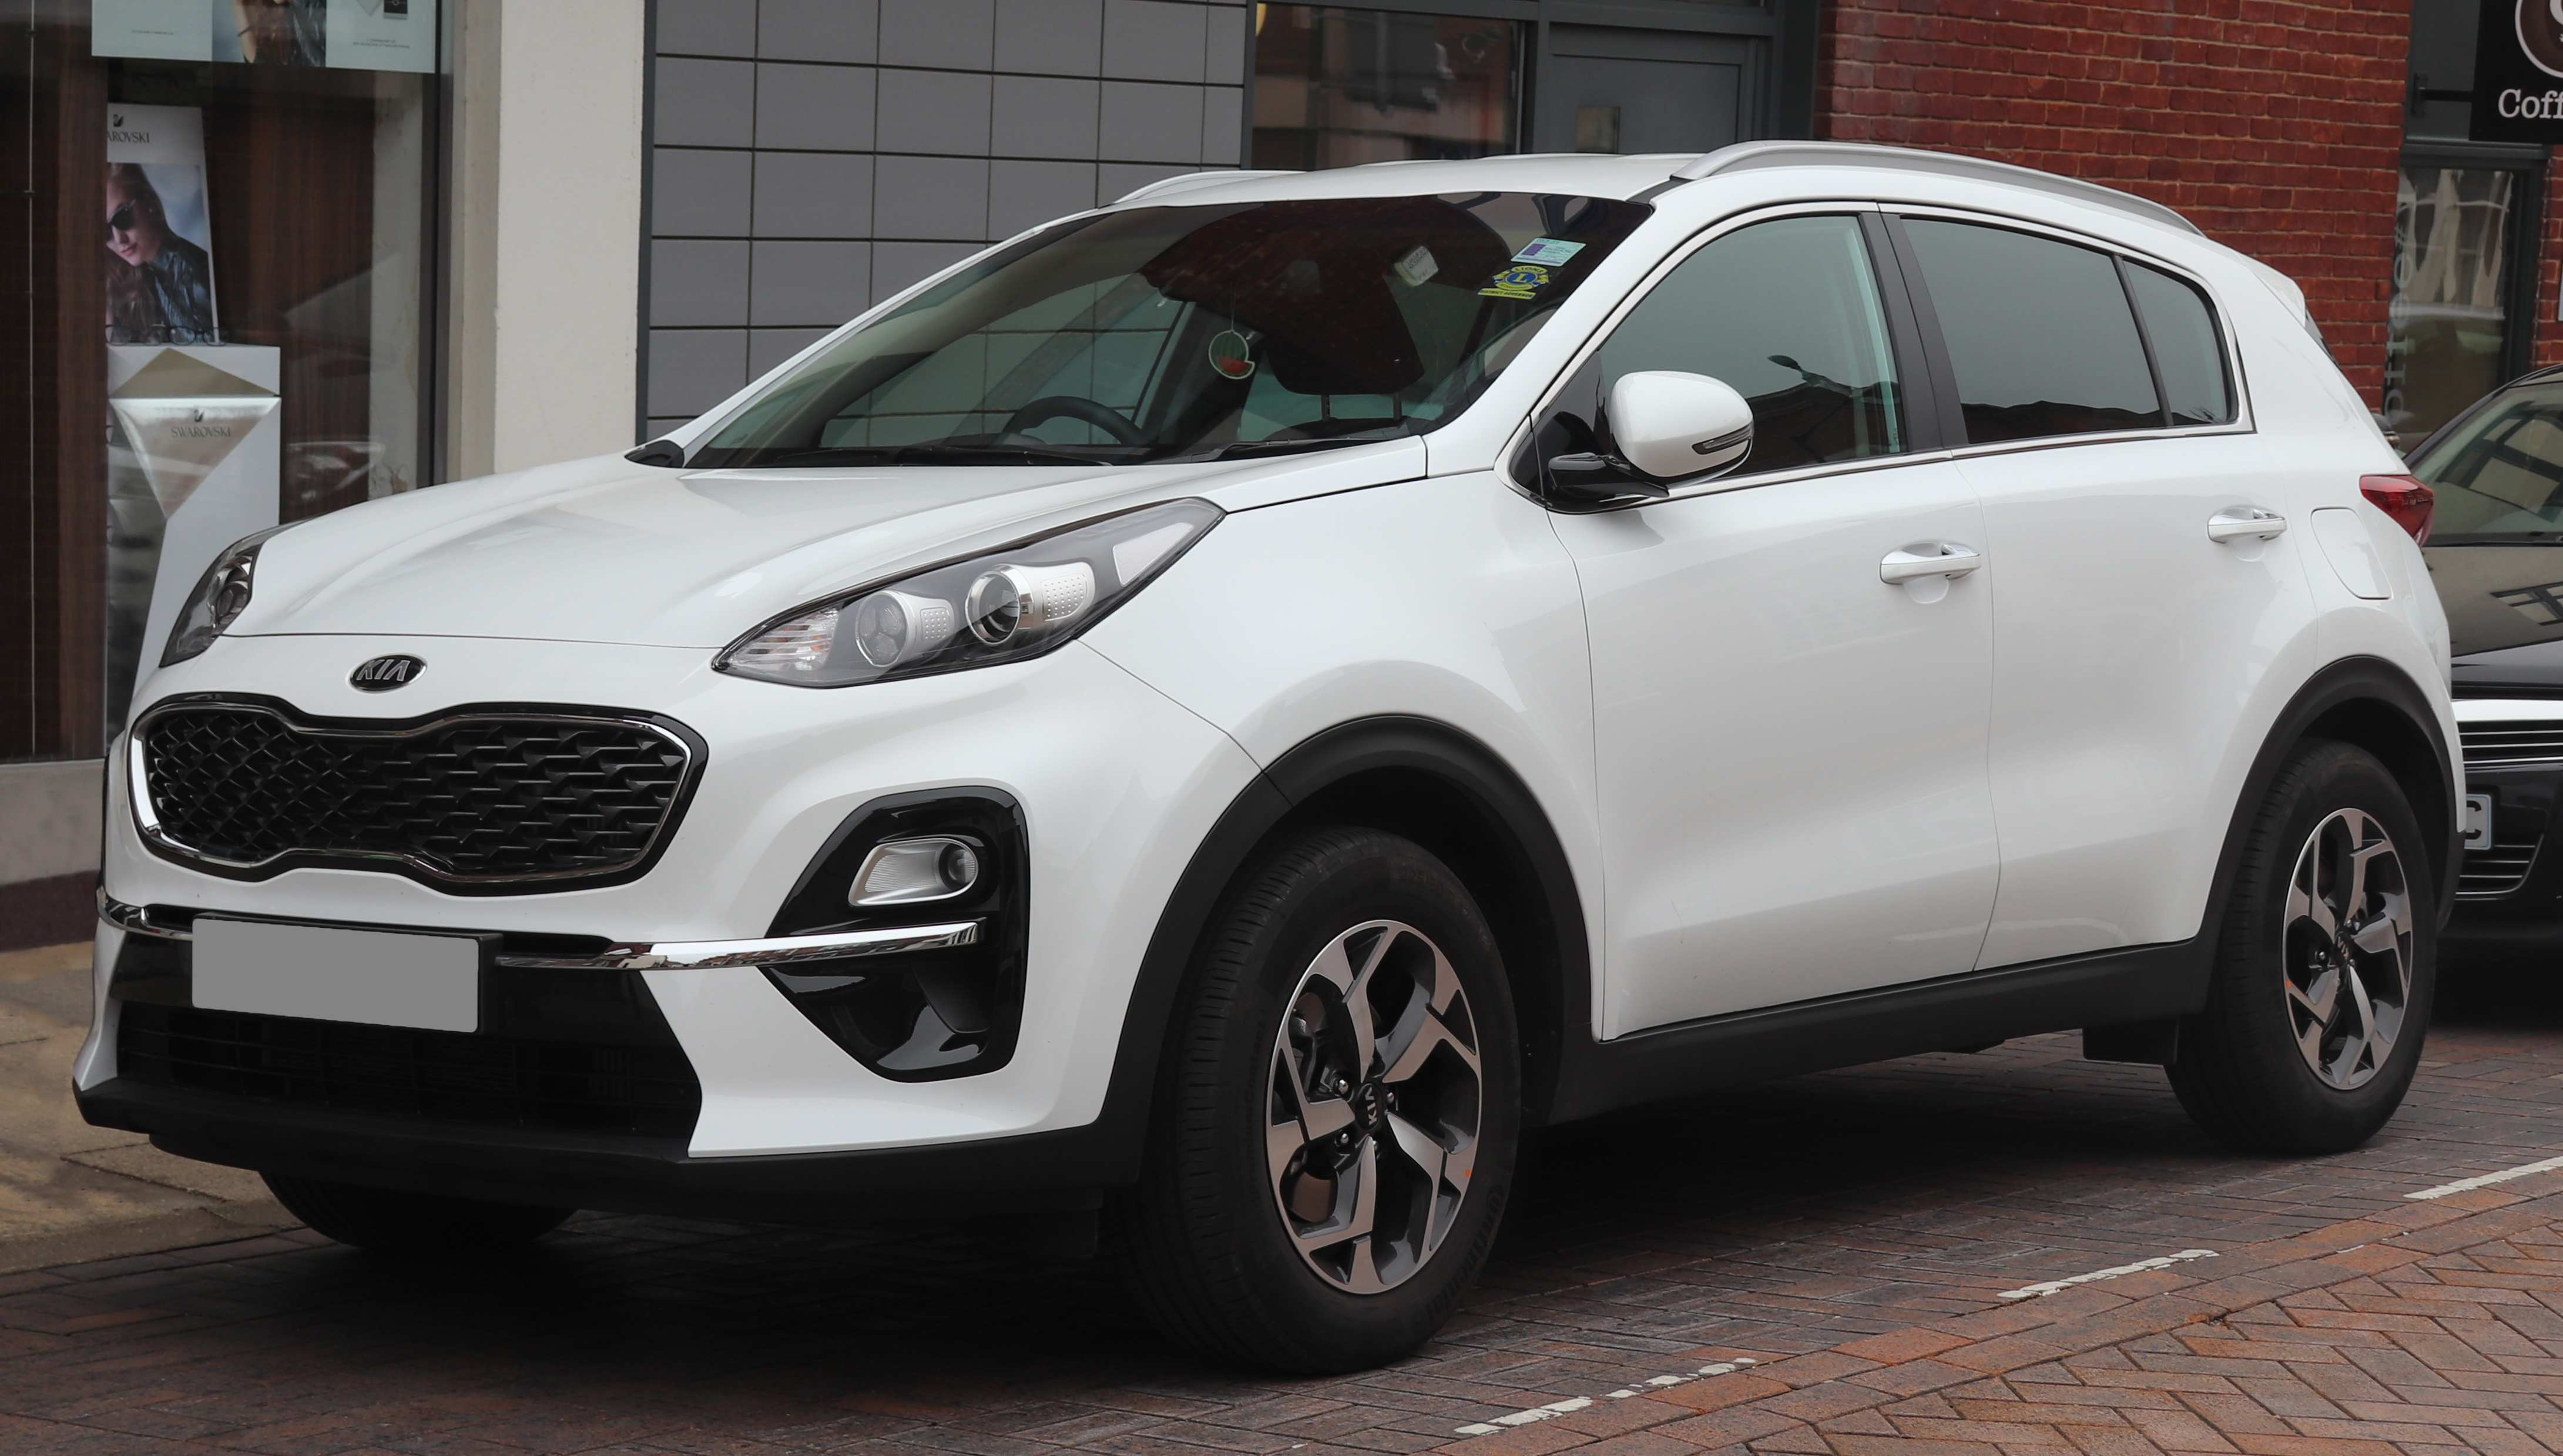 55 Gallery of Best 2019 Kia Sportage Sx Turbo Review Performance And New Engine Overview with Best 2019 Kia Sportage Sx Turbo Review Performance And New Engine